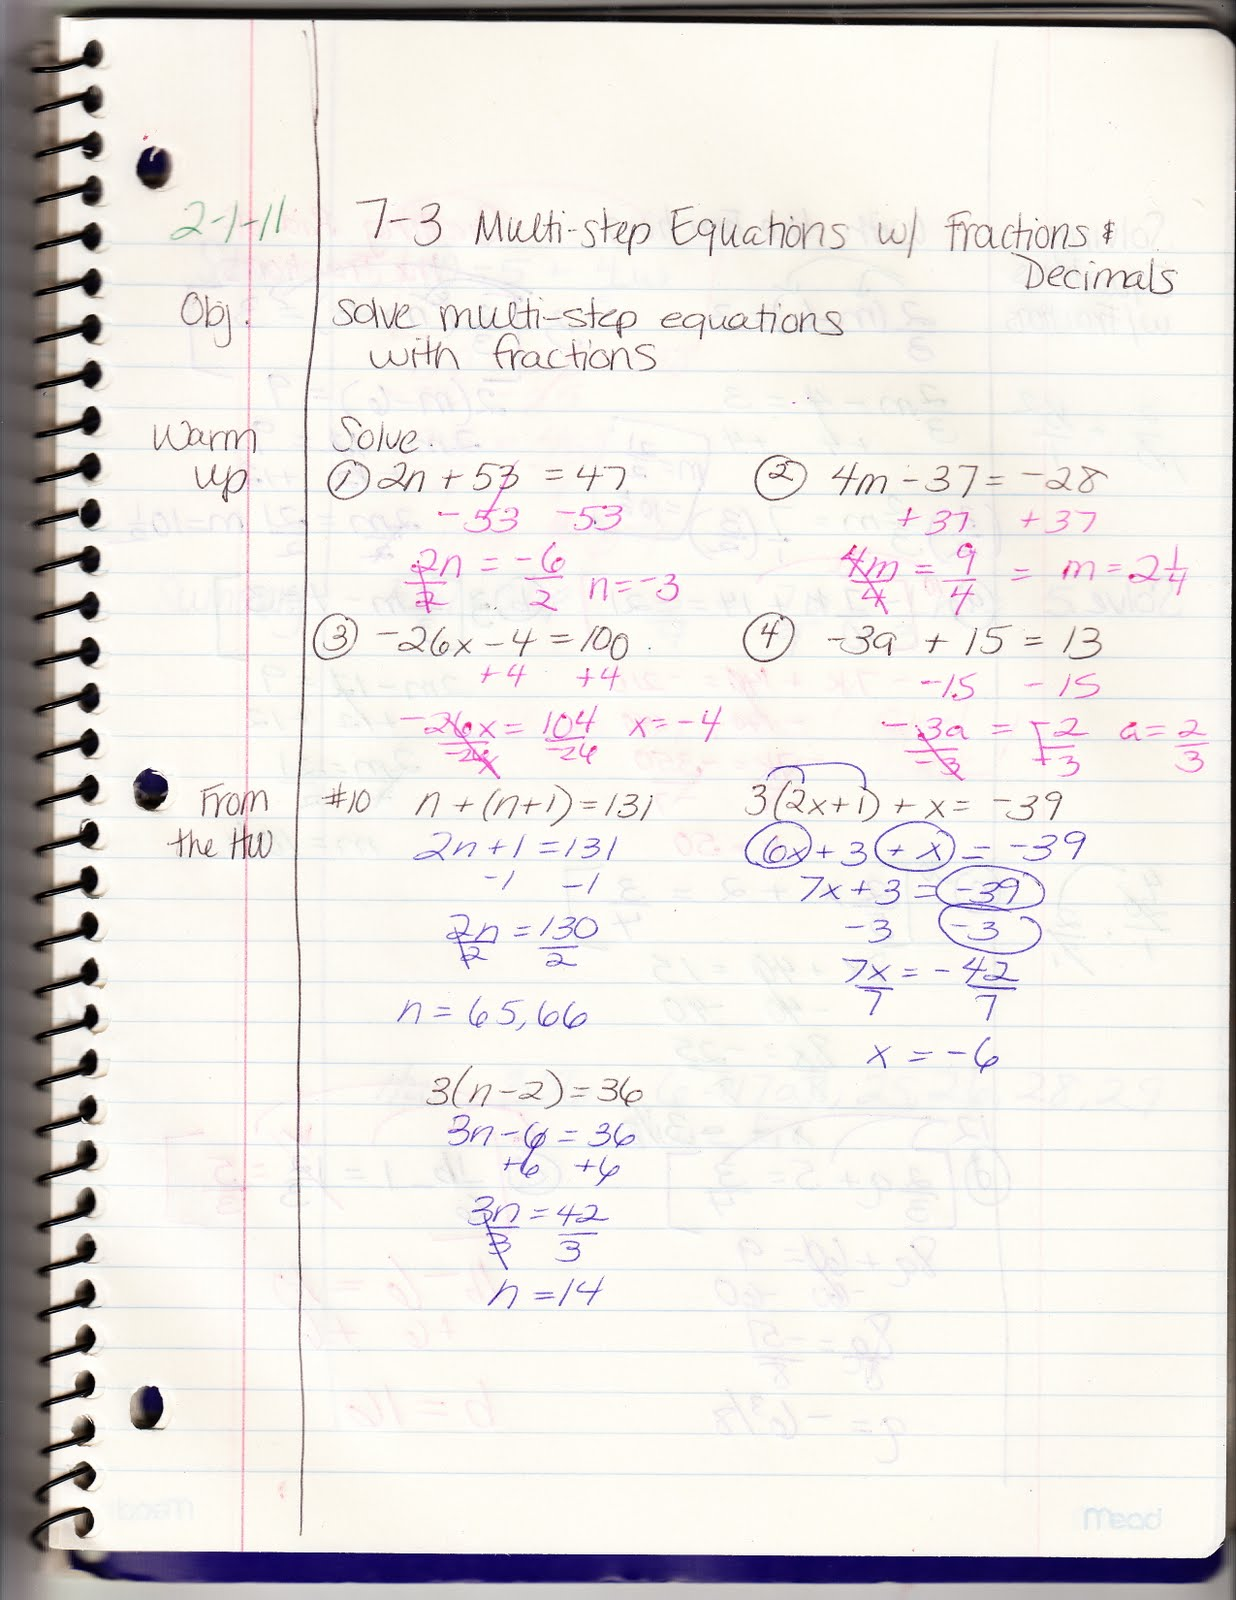 worksheet Multi Step Equations With Fractions Worksheet multi step equation worksheet abitlikethis solving with fractions worksheet